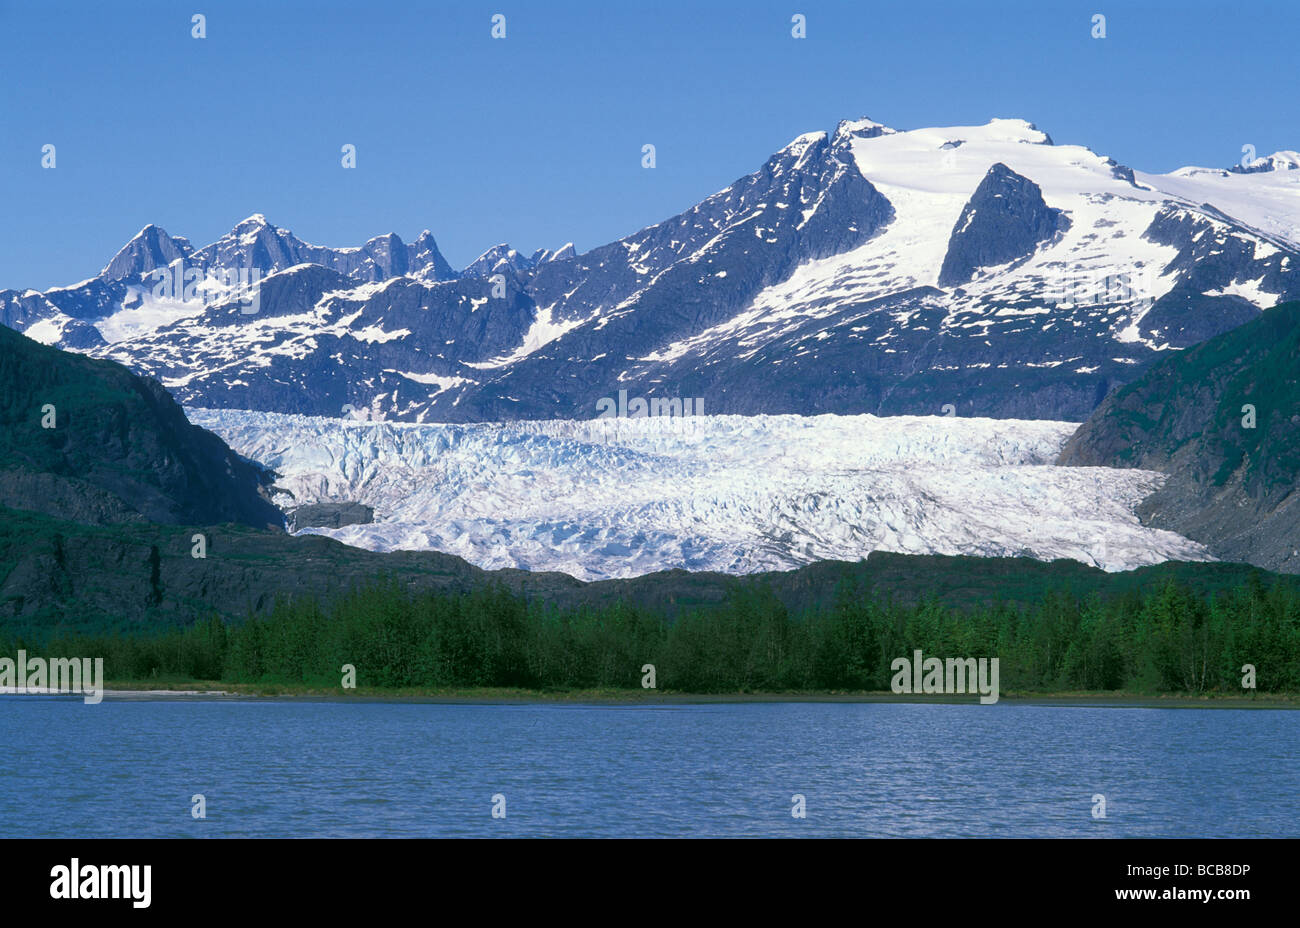 Mendenhall Lake, Mendenhall Towers, Glacier and Mount Wrather. - Stock Image